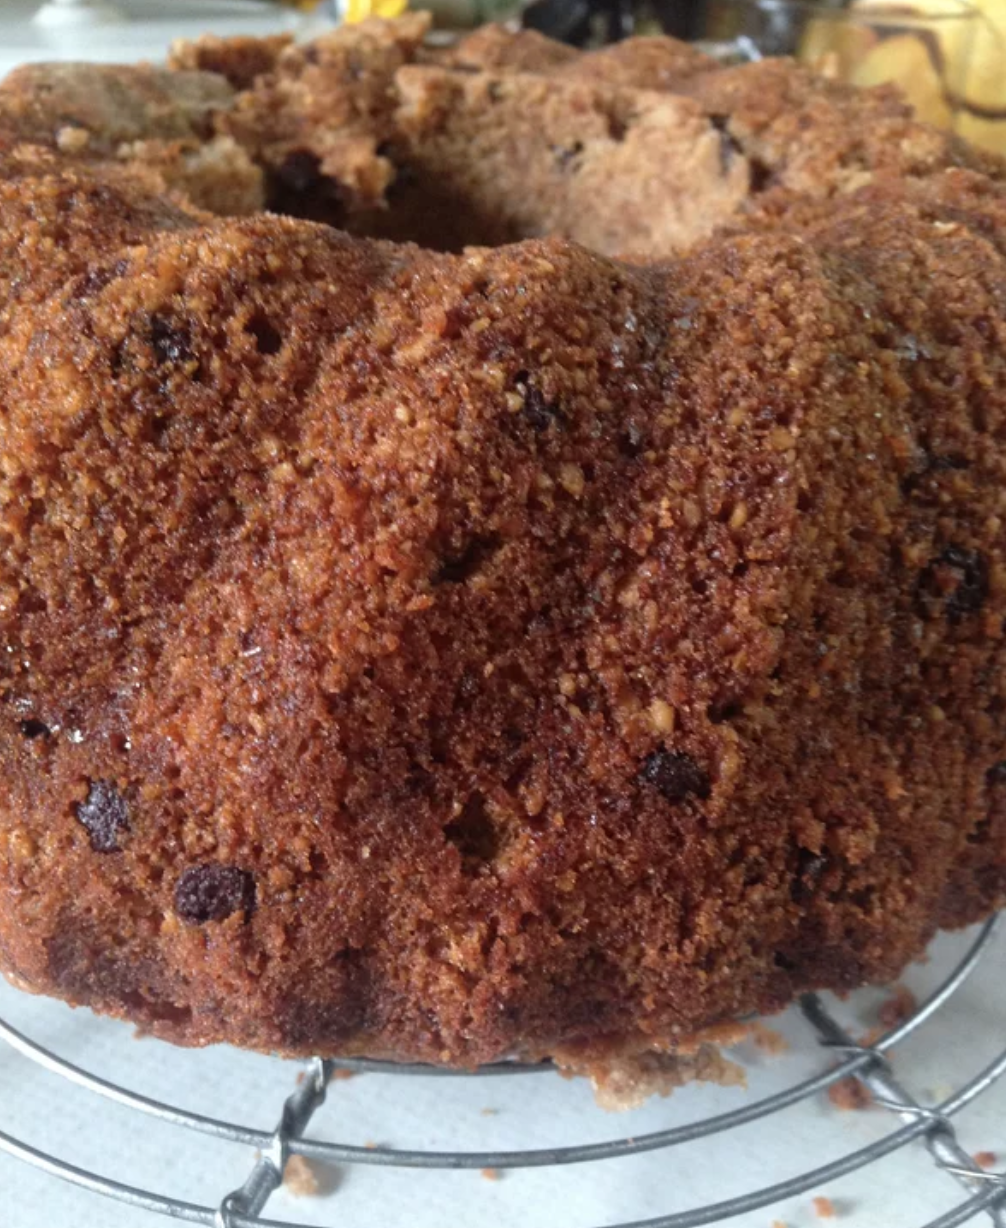 This Austrian Bundt cake is flavored with ground hazelnuts and dotted with chocolate chips. It's perfect for making in advance and will stay moist for a few days if stored in an airtight container. Brush the cake with apricot preserves while it is still warm, and serve with sweetened vanilla cream if you like.